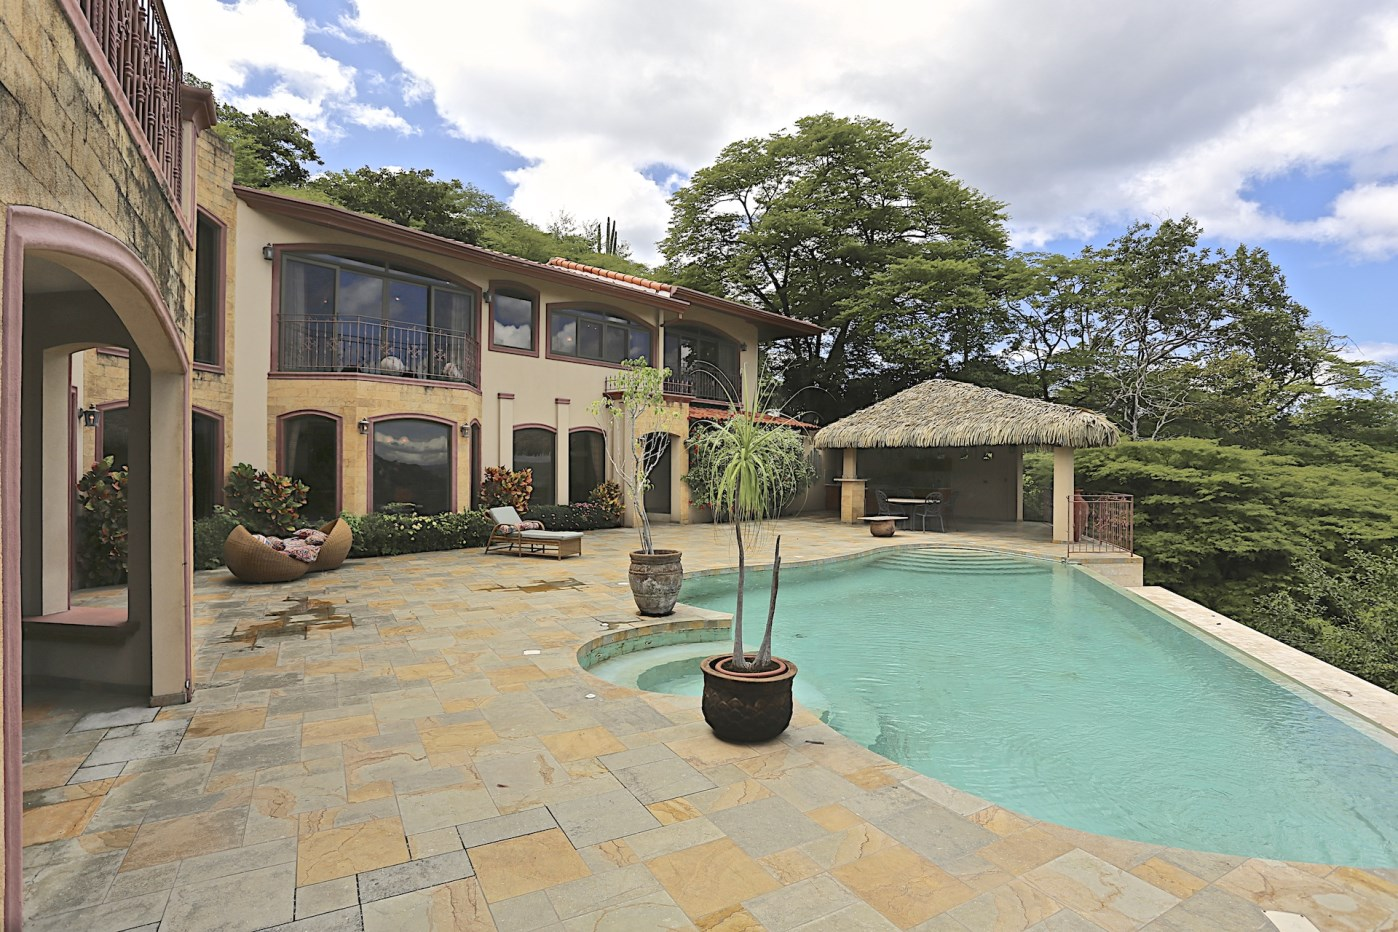 hermosas fotos de casa hd RE MAX Real Estate For Sale Or Lease Listing Or Properties